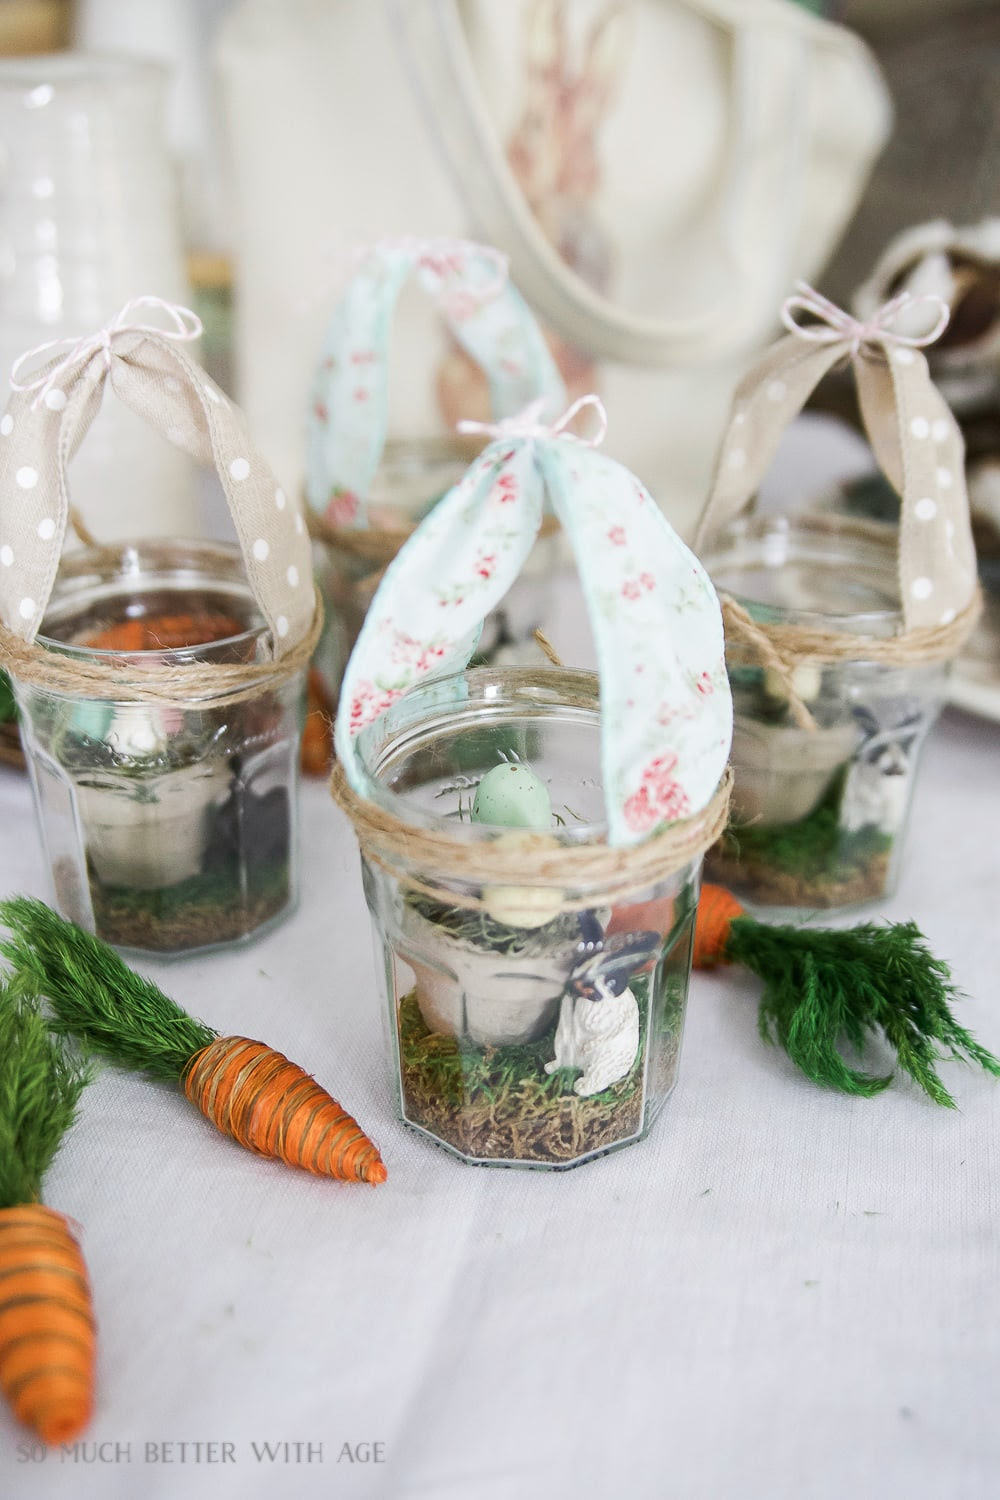 bunny-jars-bunny-ears-eggs-moss-easter-106